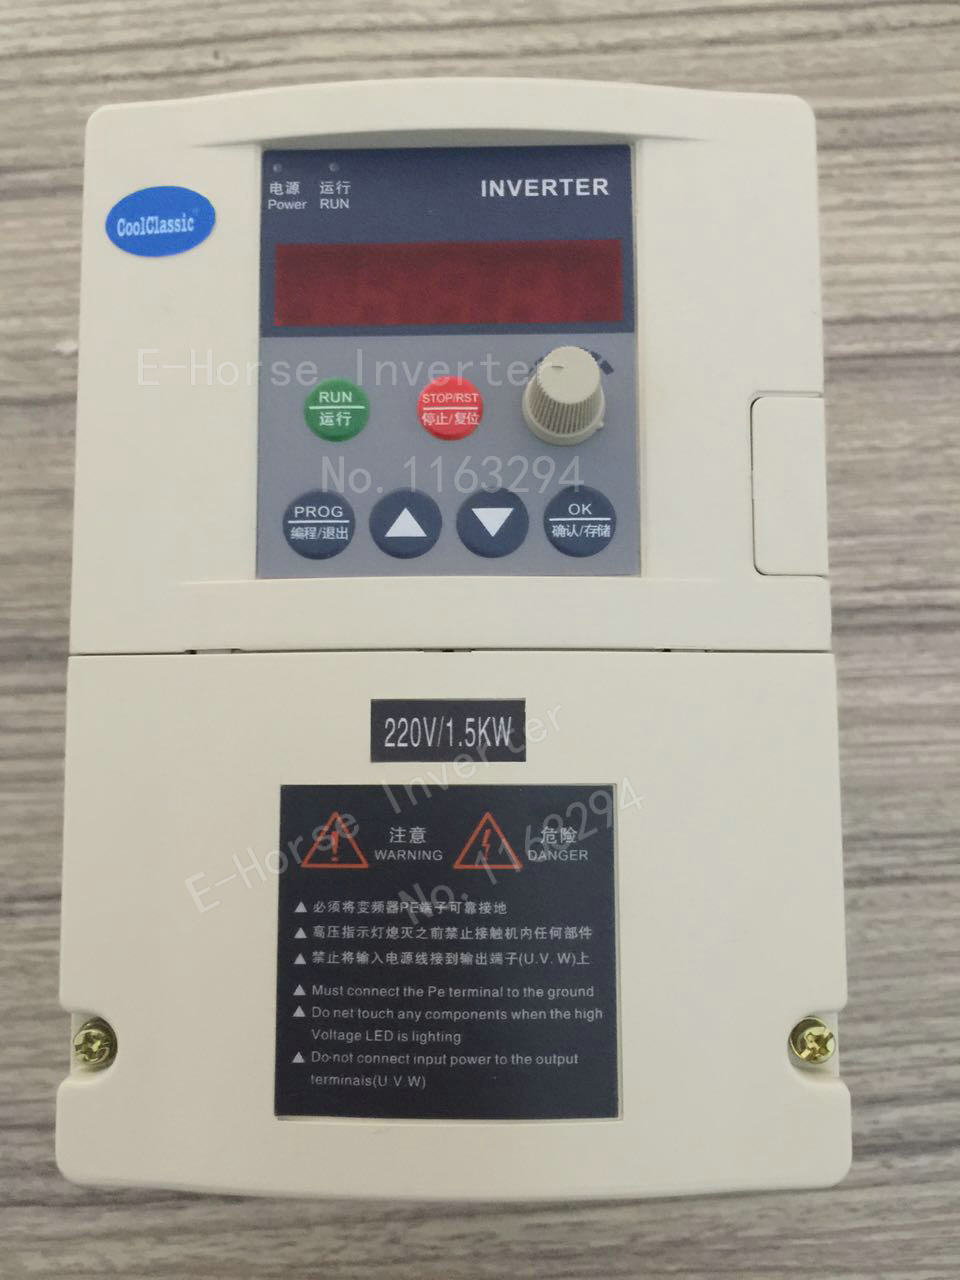 Frequency converter ZW-S2015 1.5KW CoolClassic Inverter single phase Input and 220v 3-phase output without control line 9 v7 inverter cimr v7at25p5 220v 5 5kw 3 phase new original